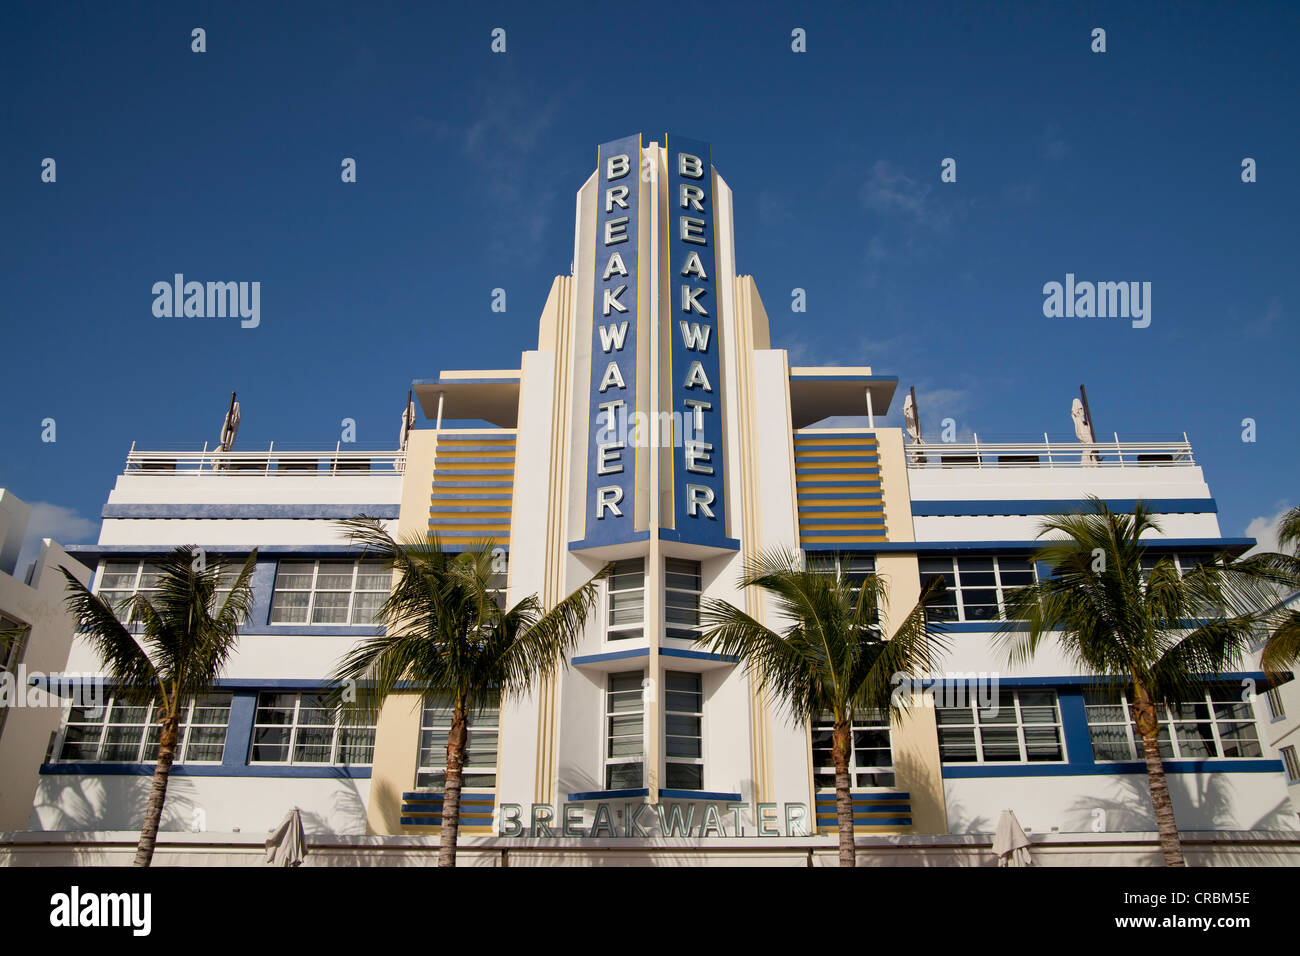 breakwater art deco hotel on famous ocean drive in south beach miami stock photo royalty free. Black Bedroom Furniture Sets. Home Design Ideas